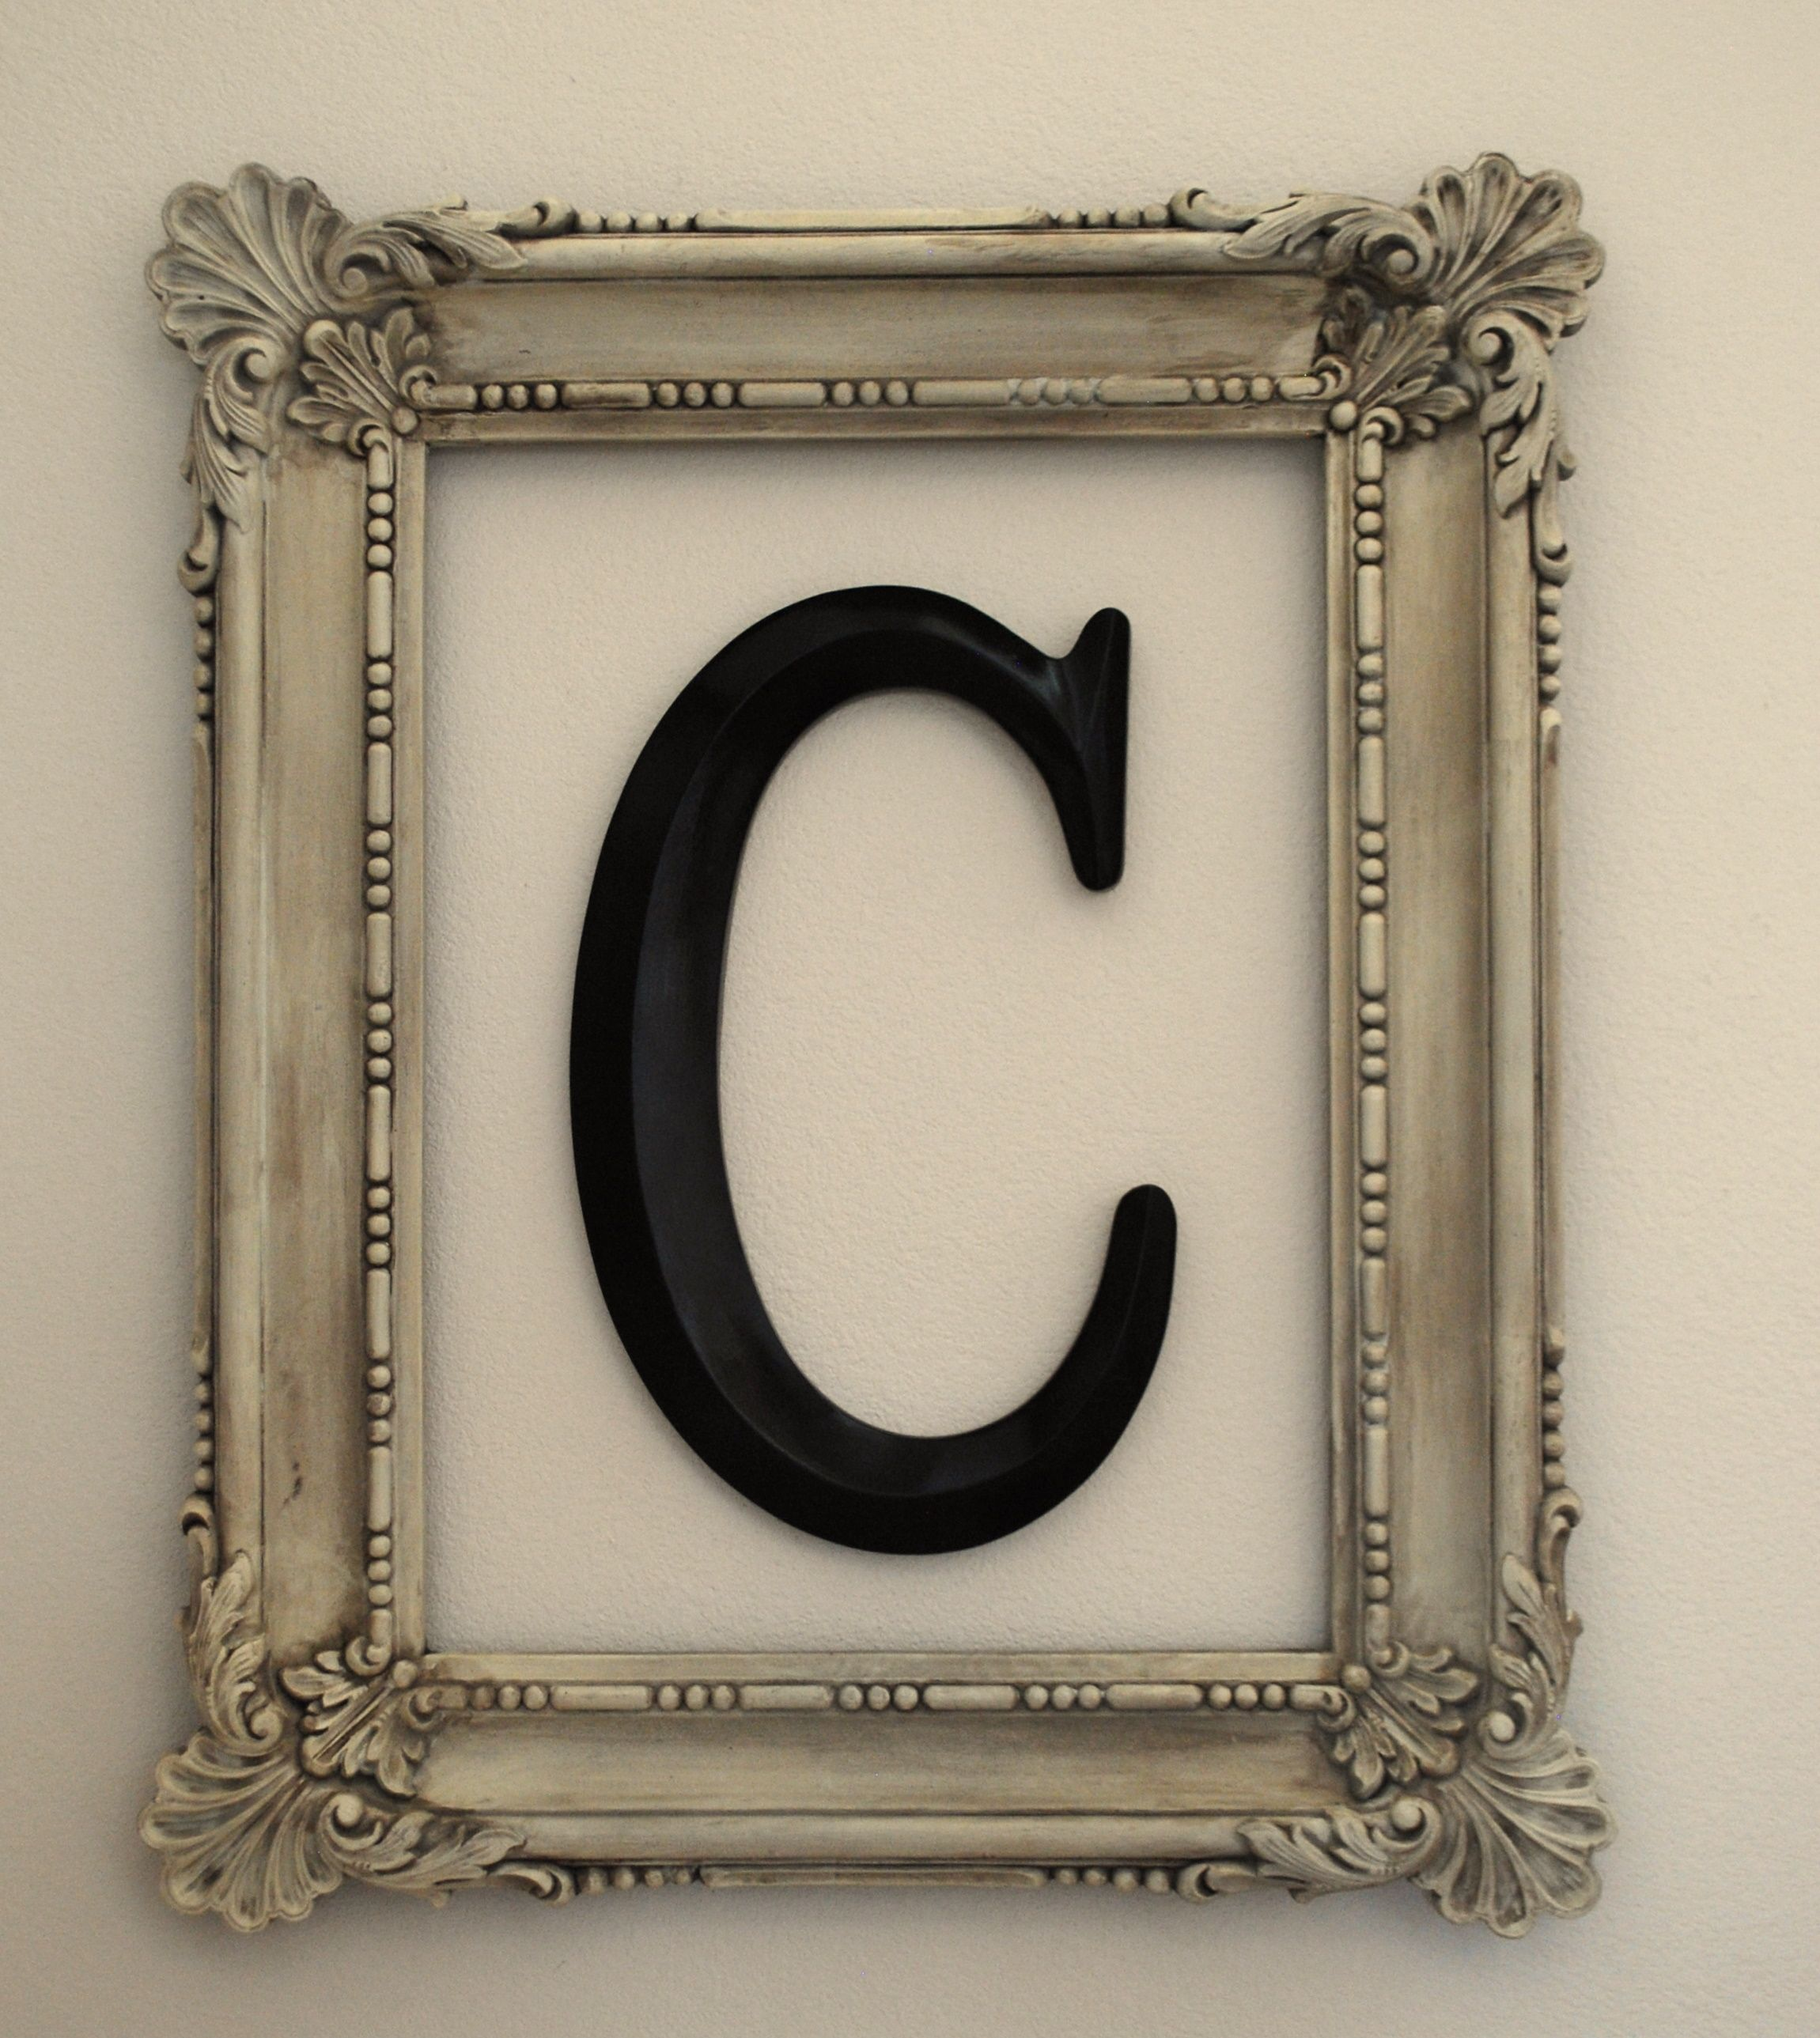 Another DIY decorating project-- making a framed monogram from thrift store items. Easy home decor that looks fabulous!